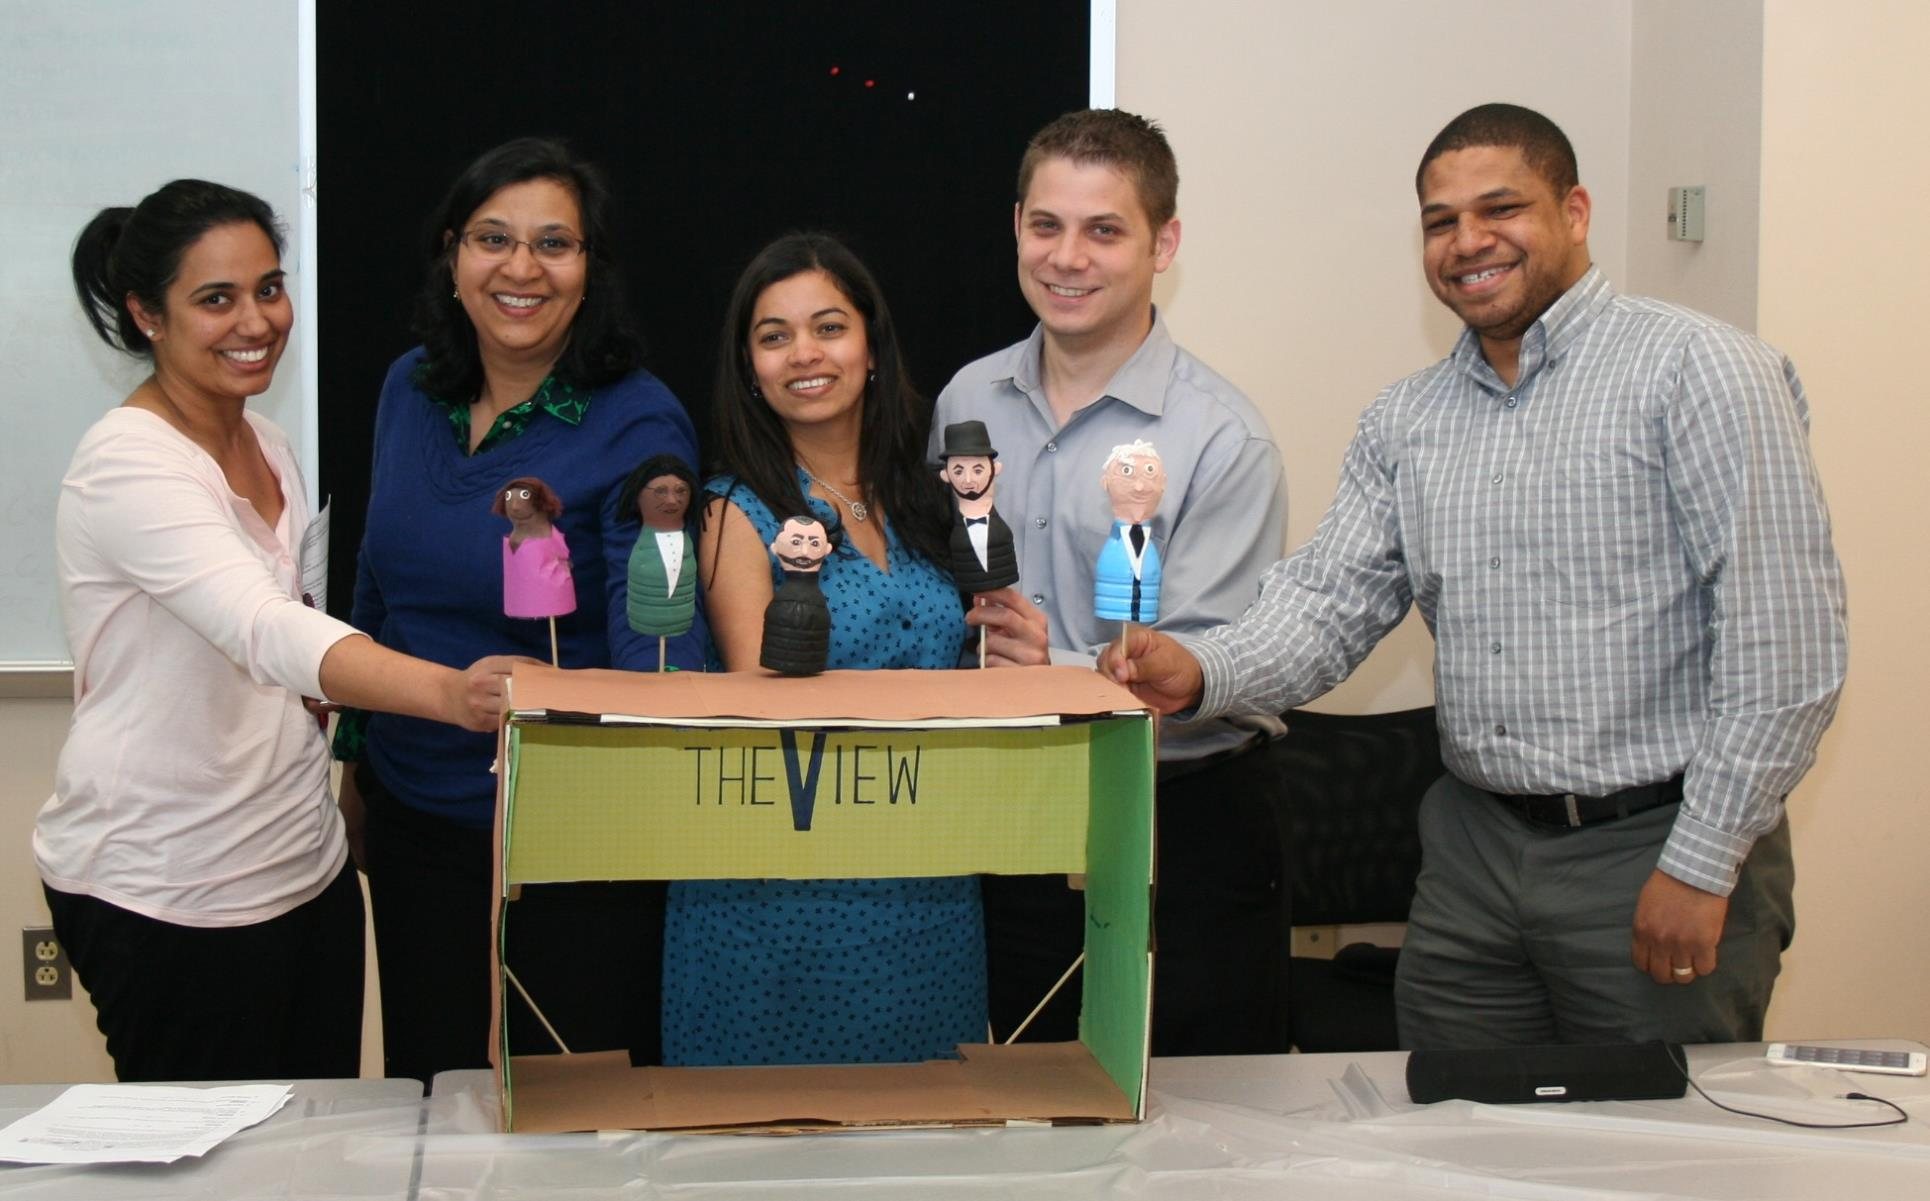 Members of the Class of 2015 showed their creativity through a leadership styles puppet show